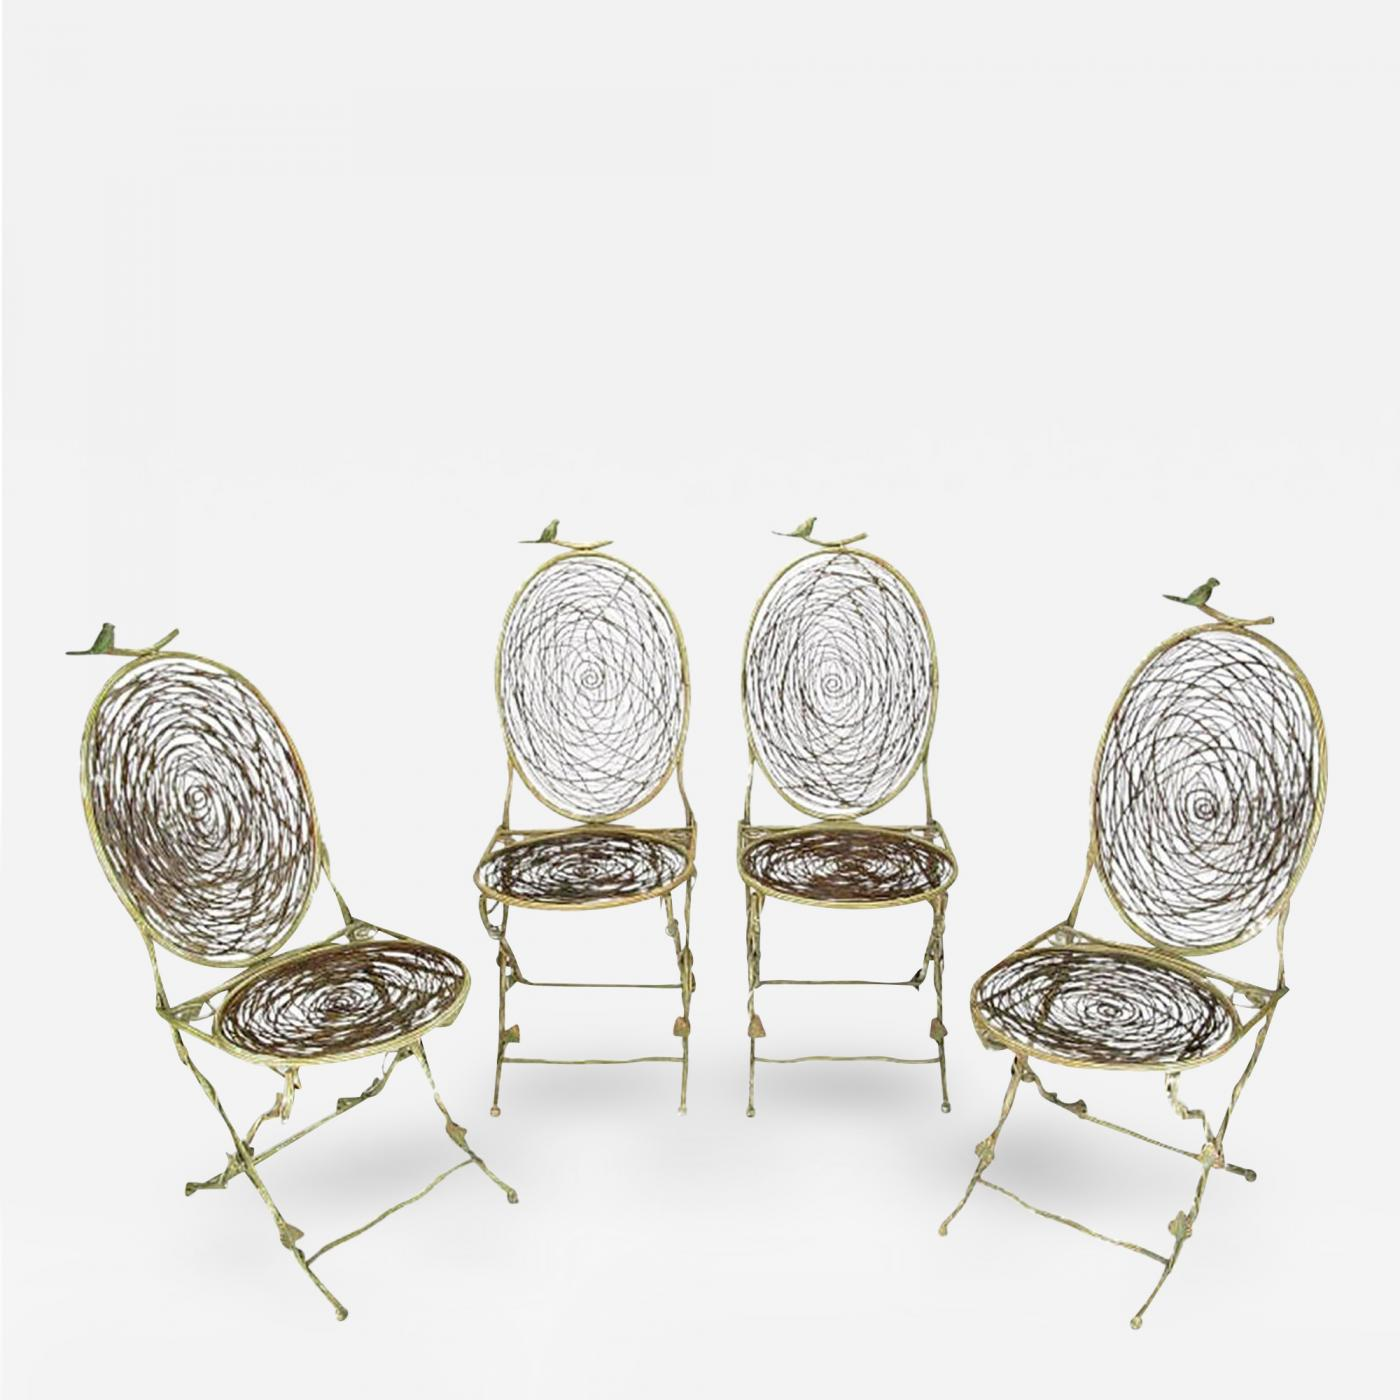 Bird Nest Chair Four Iron Faux Bois Folding Chairs With Bird Nest Seats And Backs